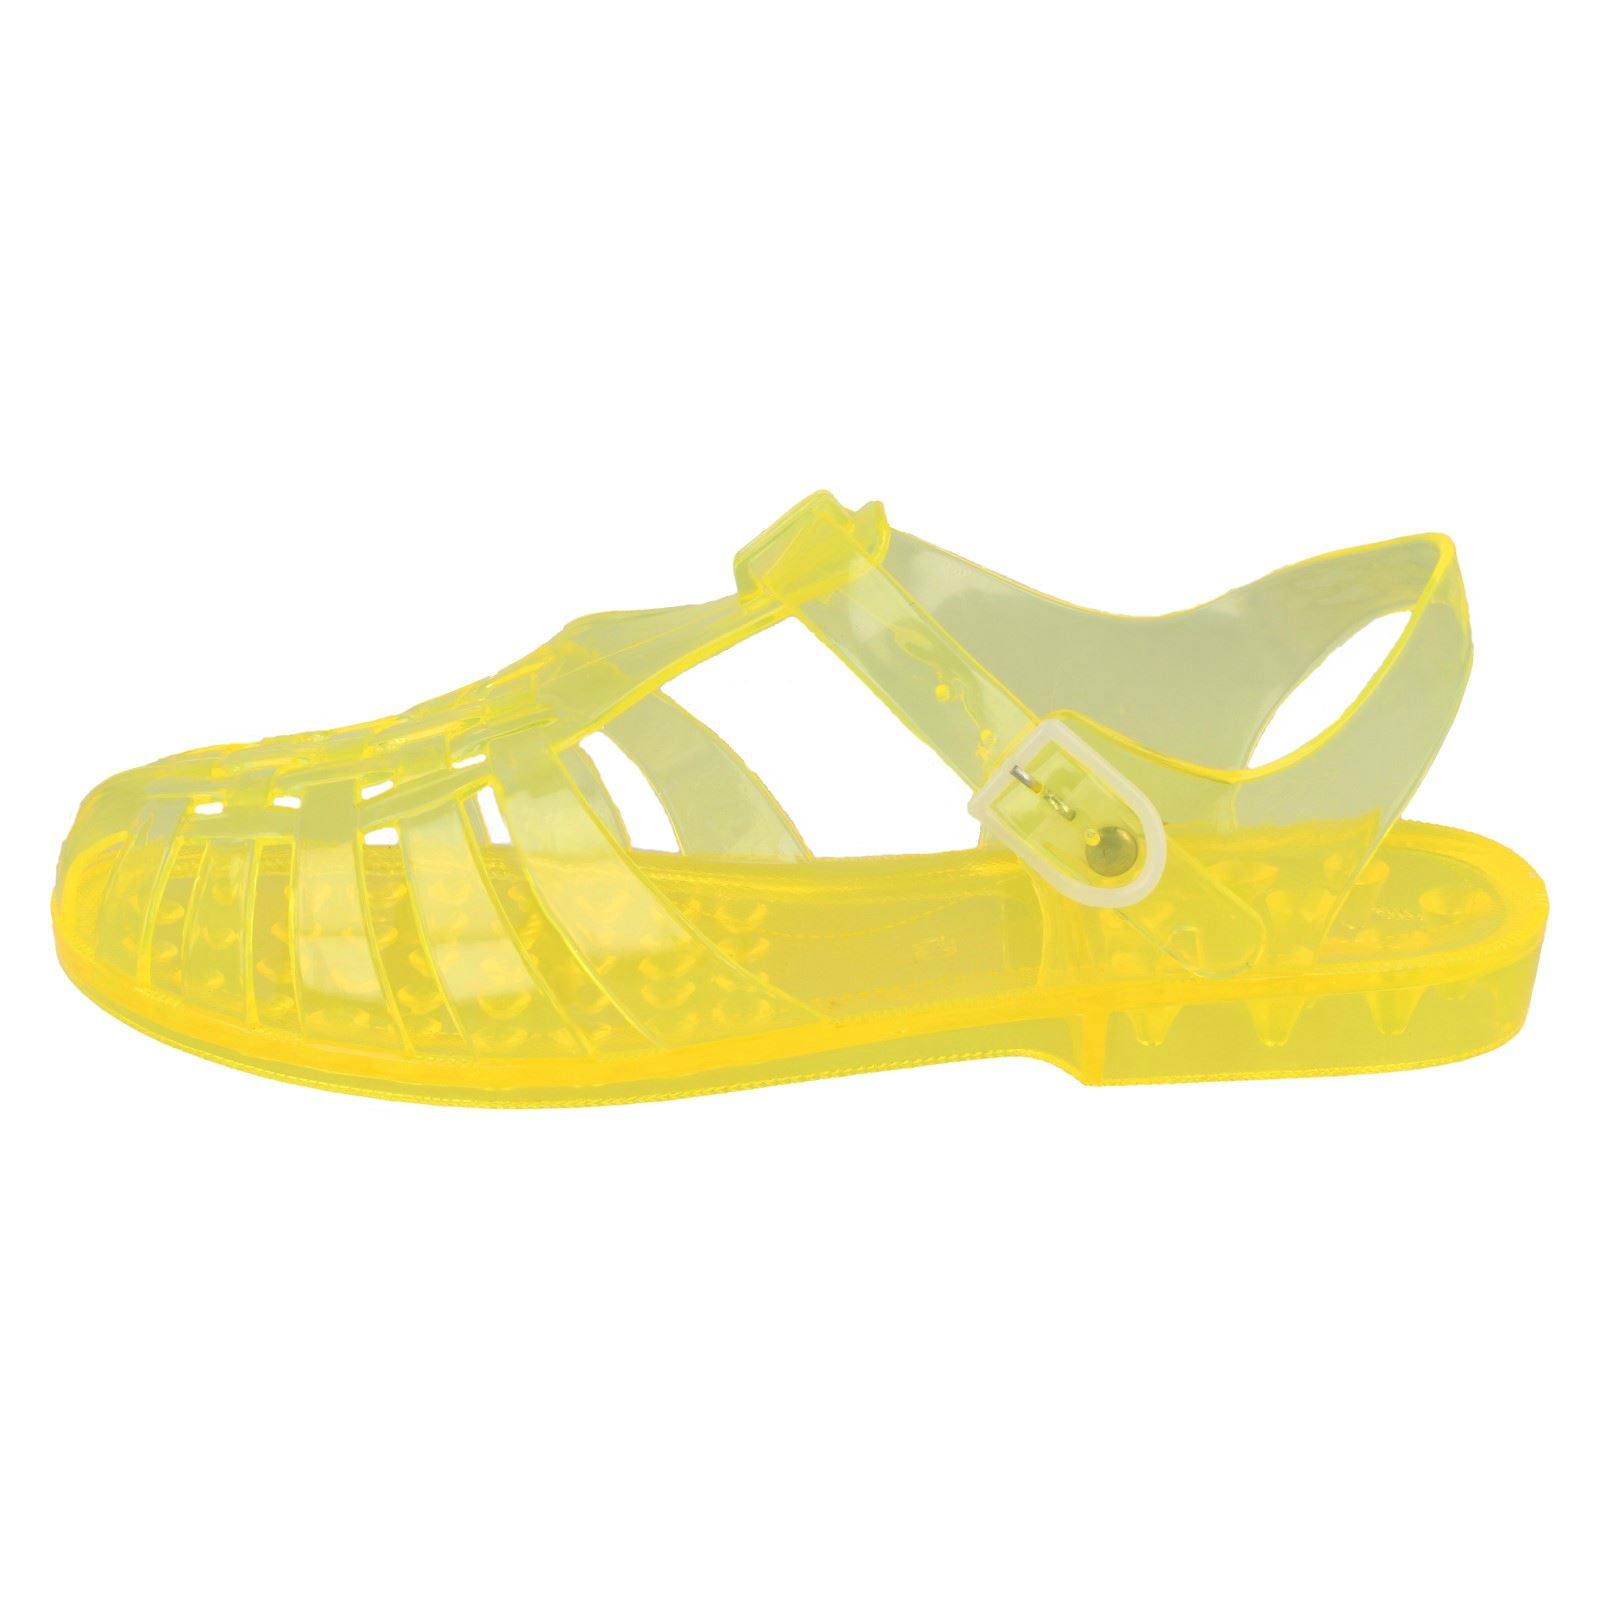 614e674eef2 Ladies Spot on Jelly Sandals F0714 Yellow Regular 7 for sale online ...